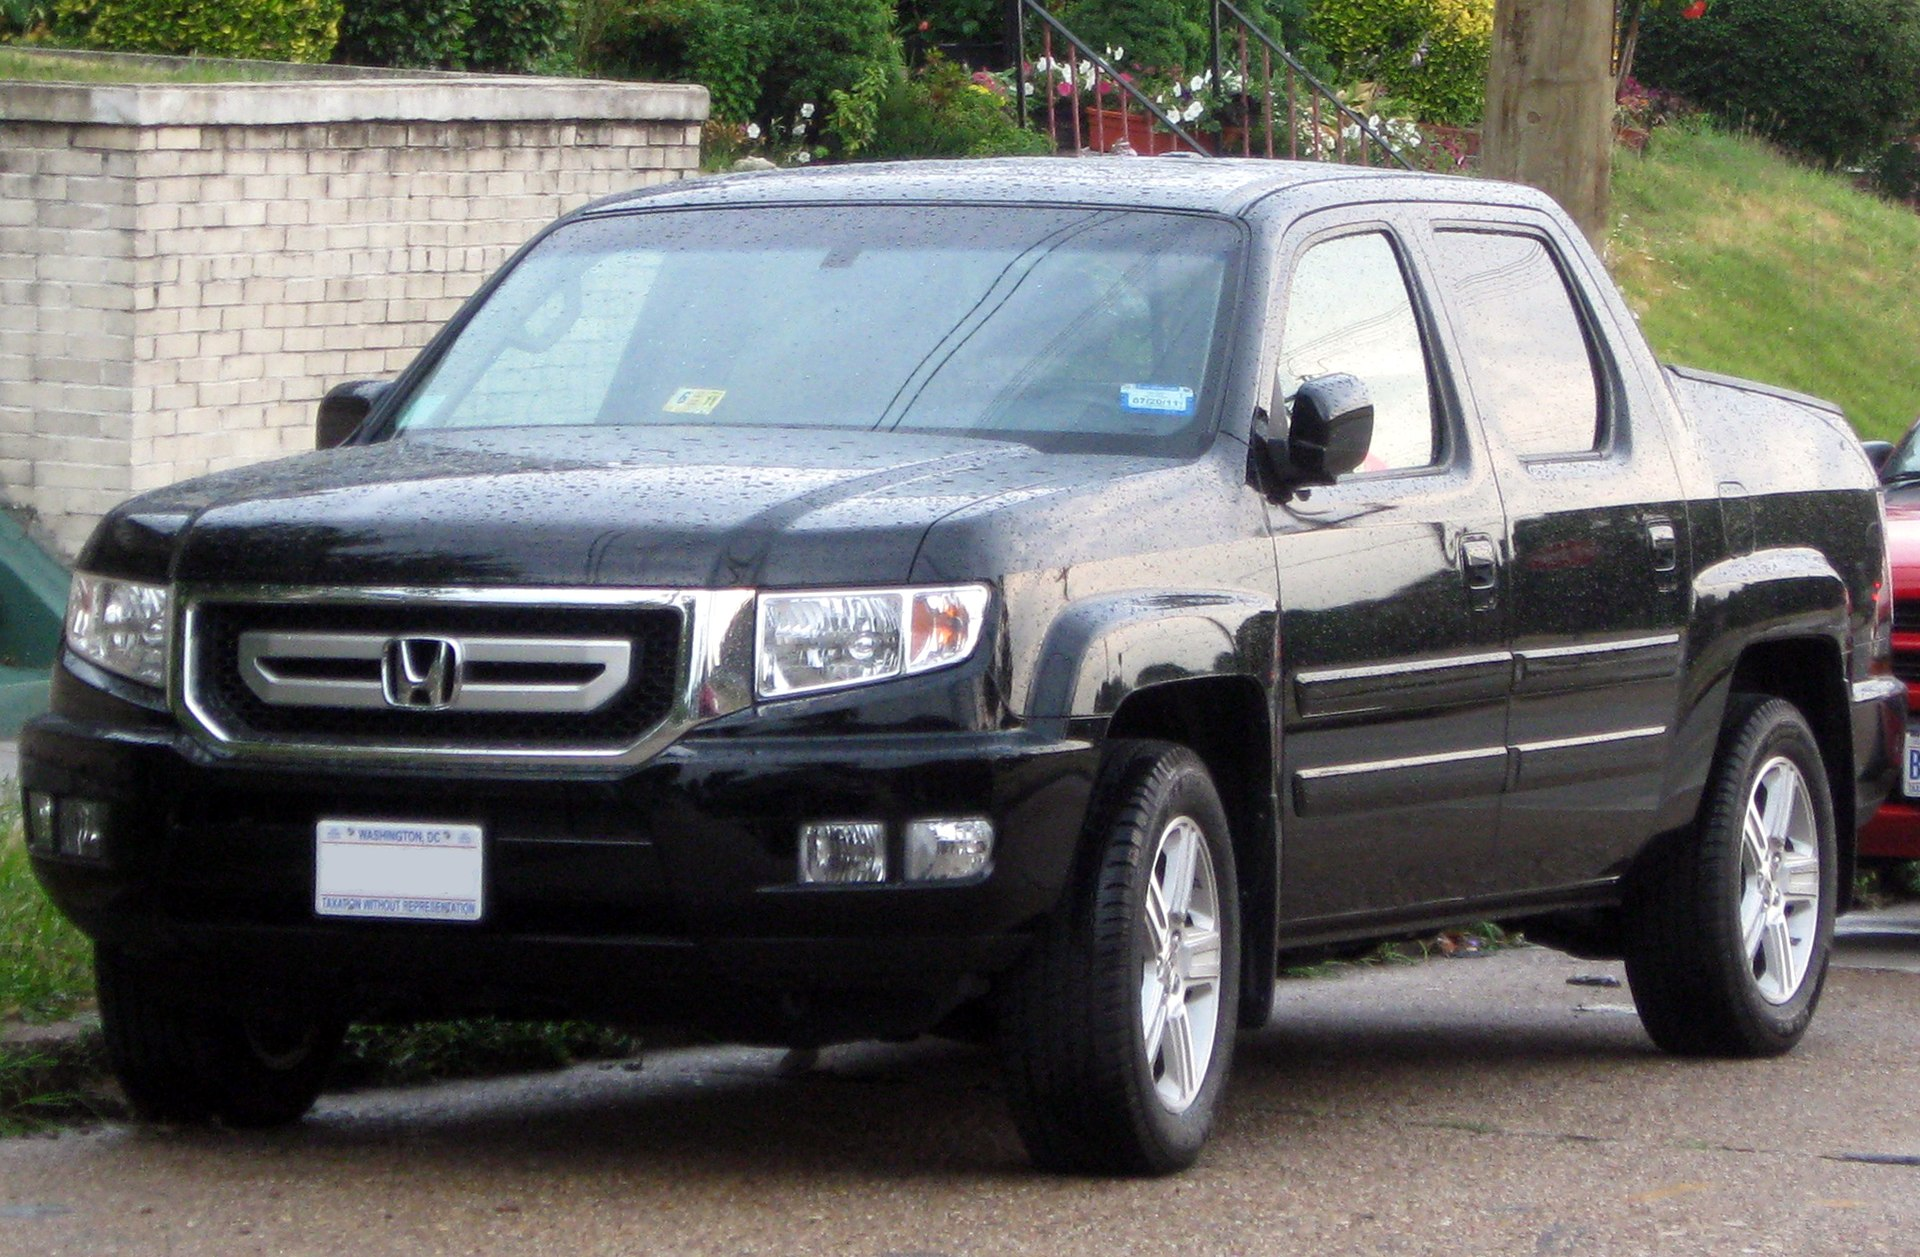 honda ridgeline wikipedia. Black Bedroom Furniture Sets. Home Design Ideas